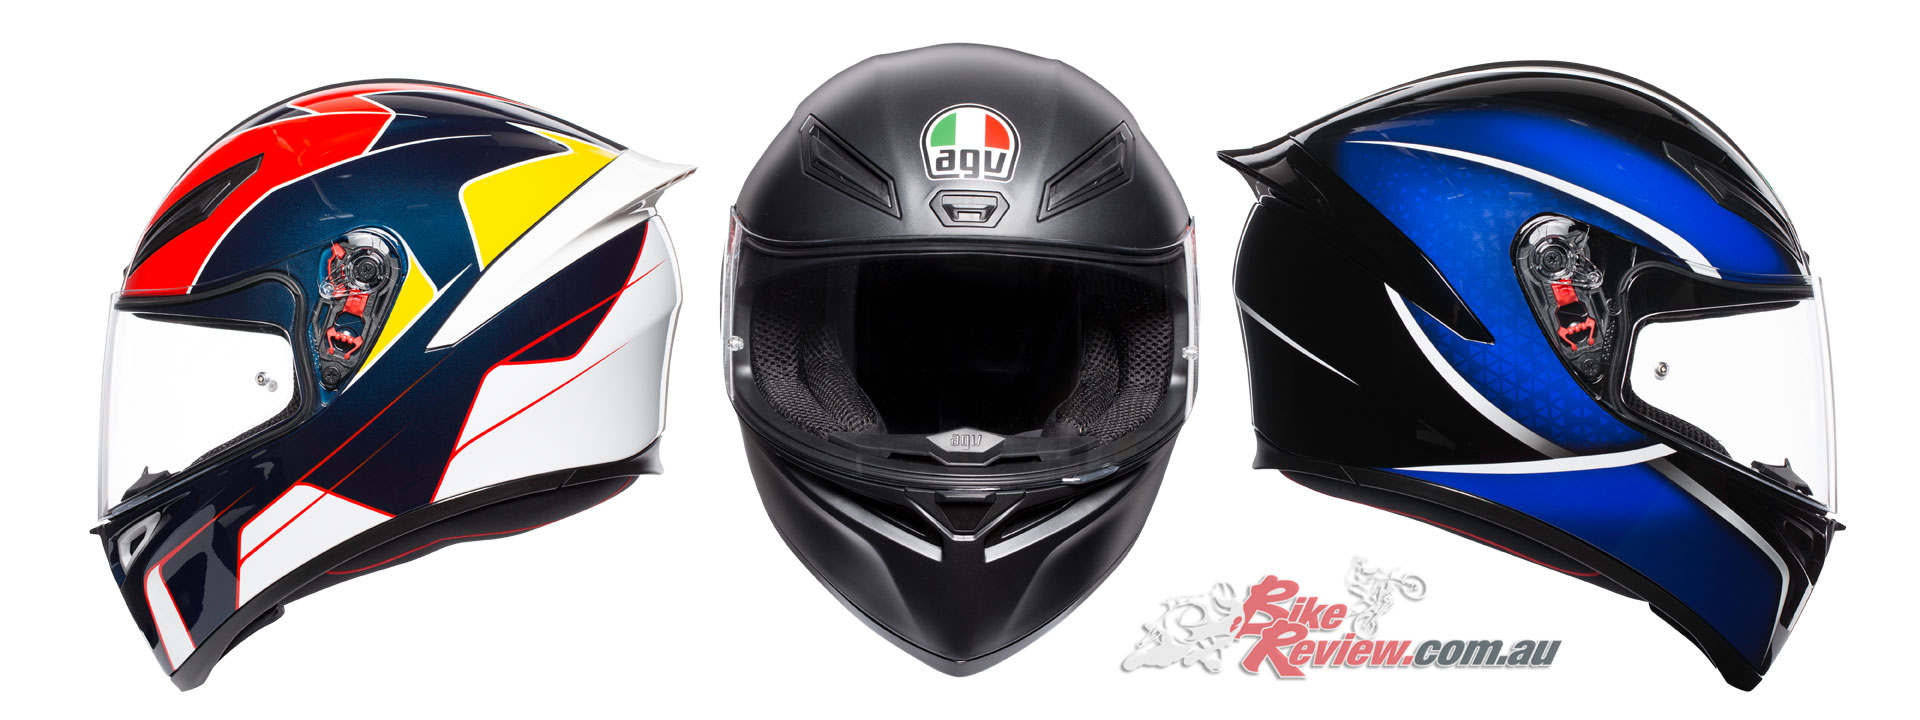 AGV K-1 Helmet - Pitlane, Matt Black, Qualify Black Blue